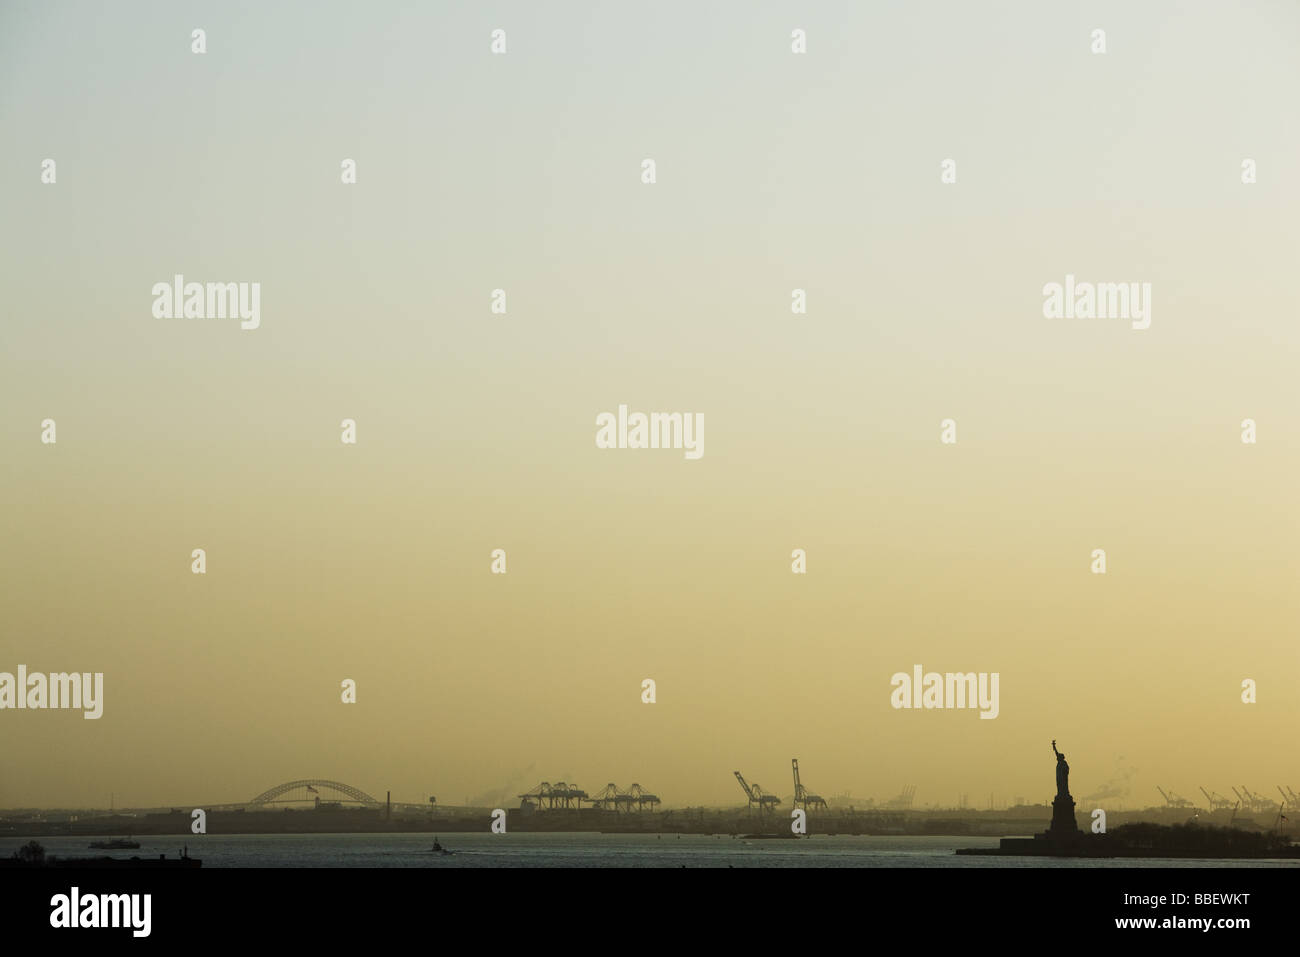 United States, New York City, New York Harbor at sunrise, Statue of Liberty visible in distance - Stock Image